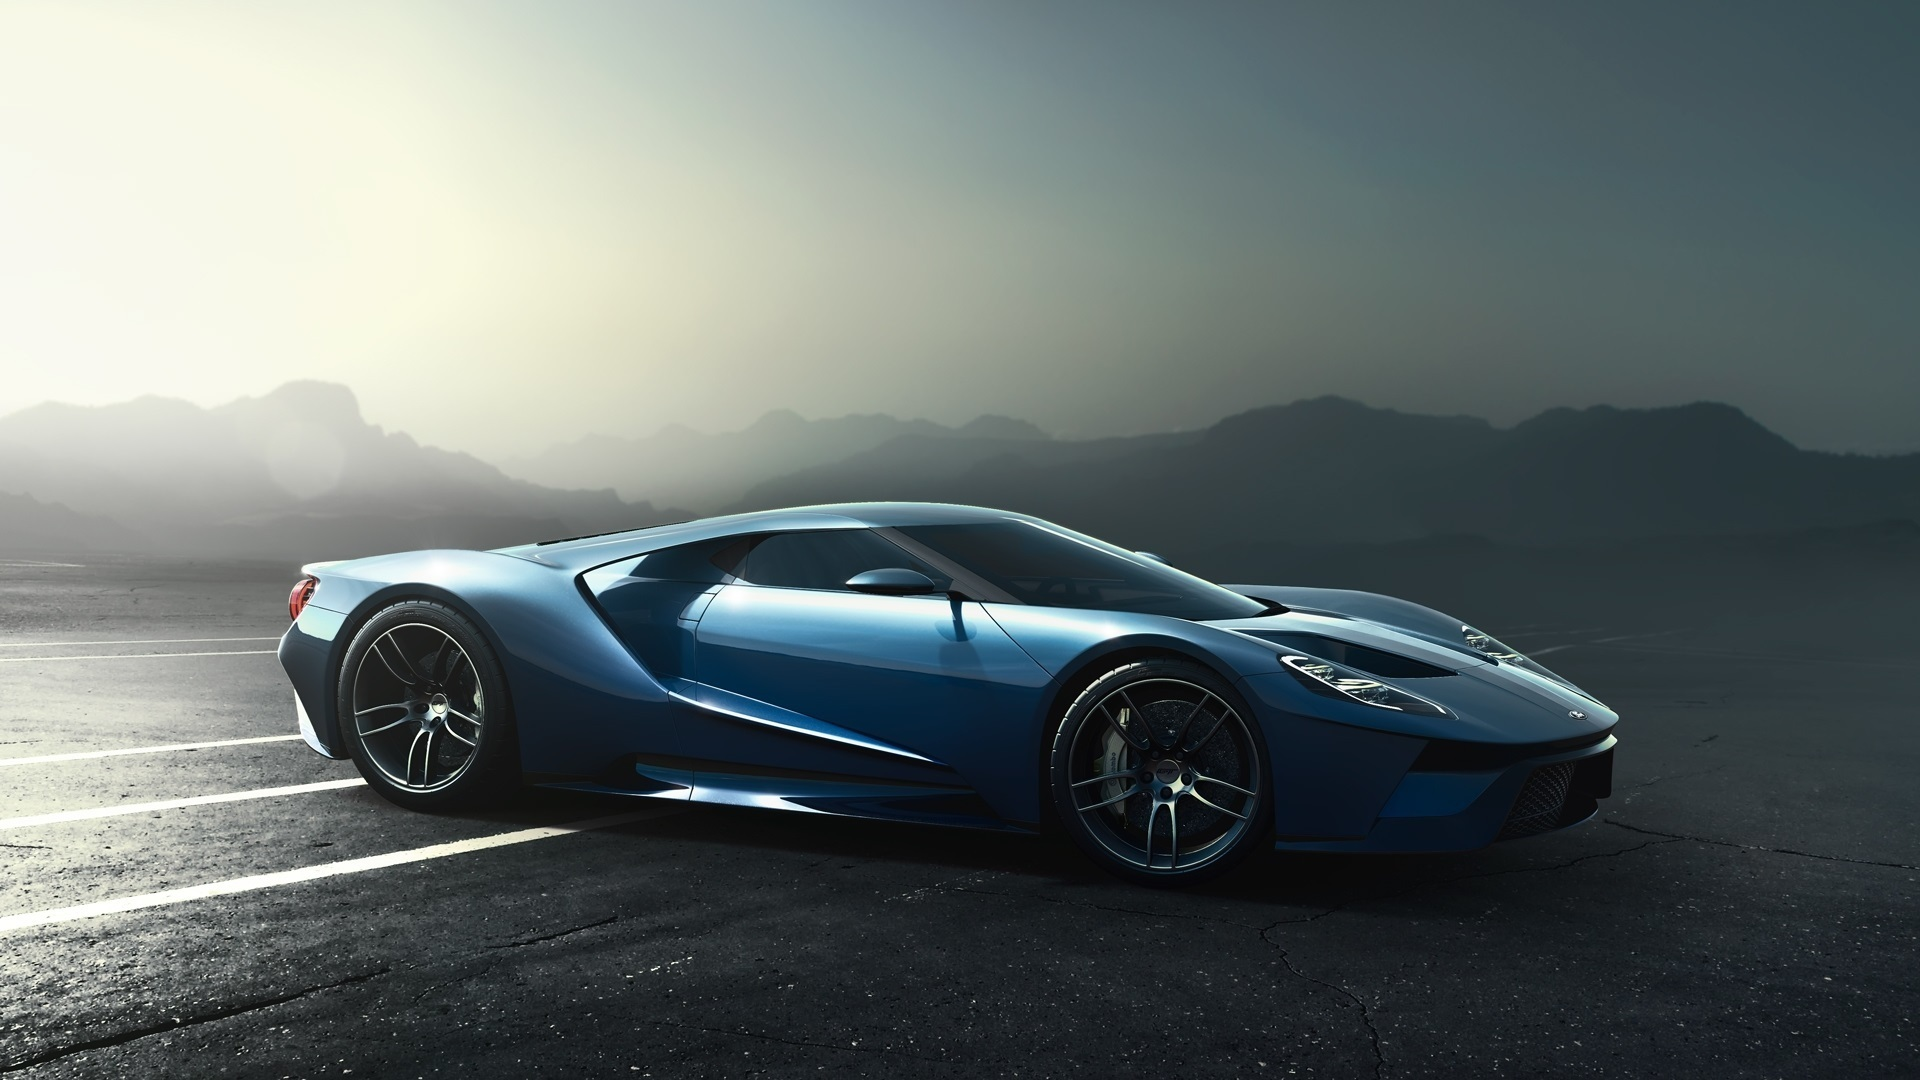 Fondos De Pantalla Ford Gt Supercar 2017 1920x1080 Full Hd